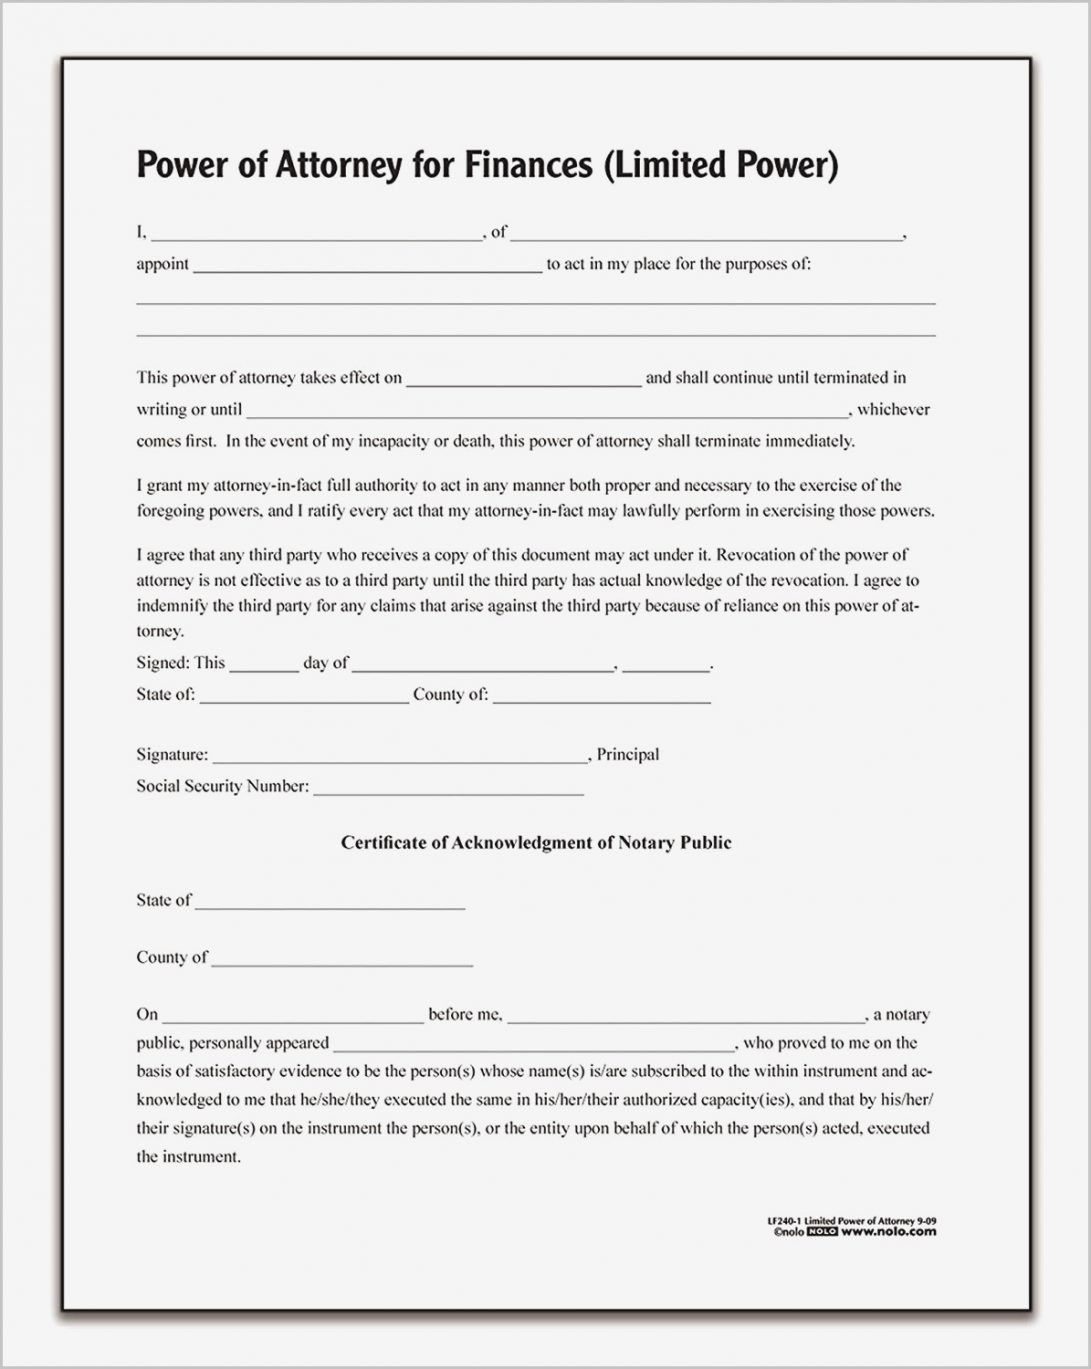 Florida Limited Power Of Is Florida Limited Power Of The Most Trending Thing Now Power Of Attorney Form Power Of Attorney Templates Free Design